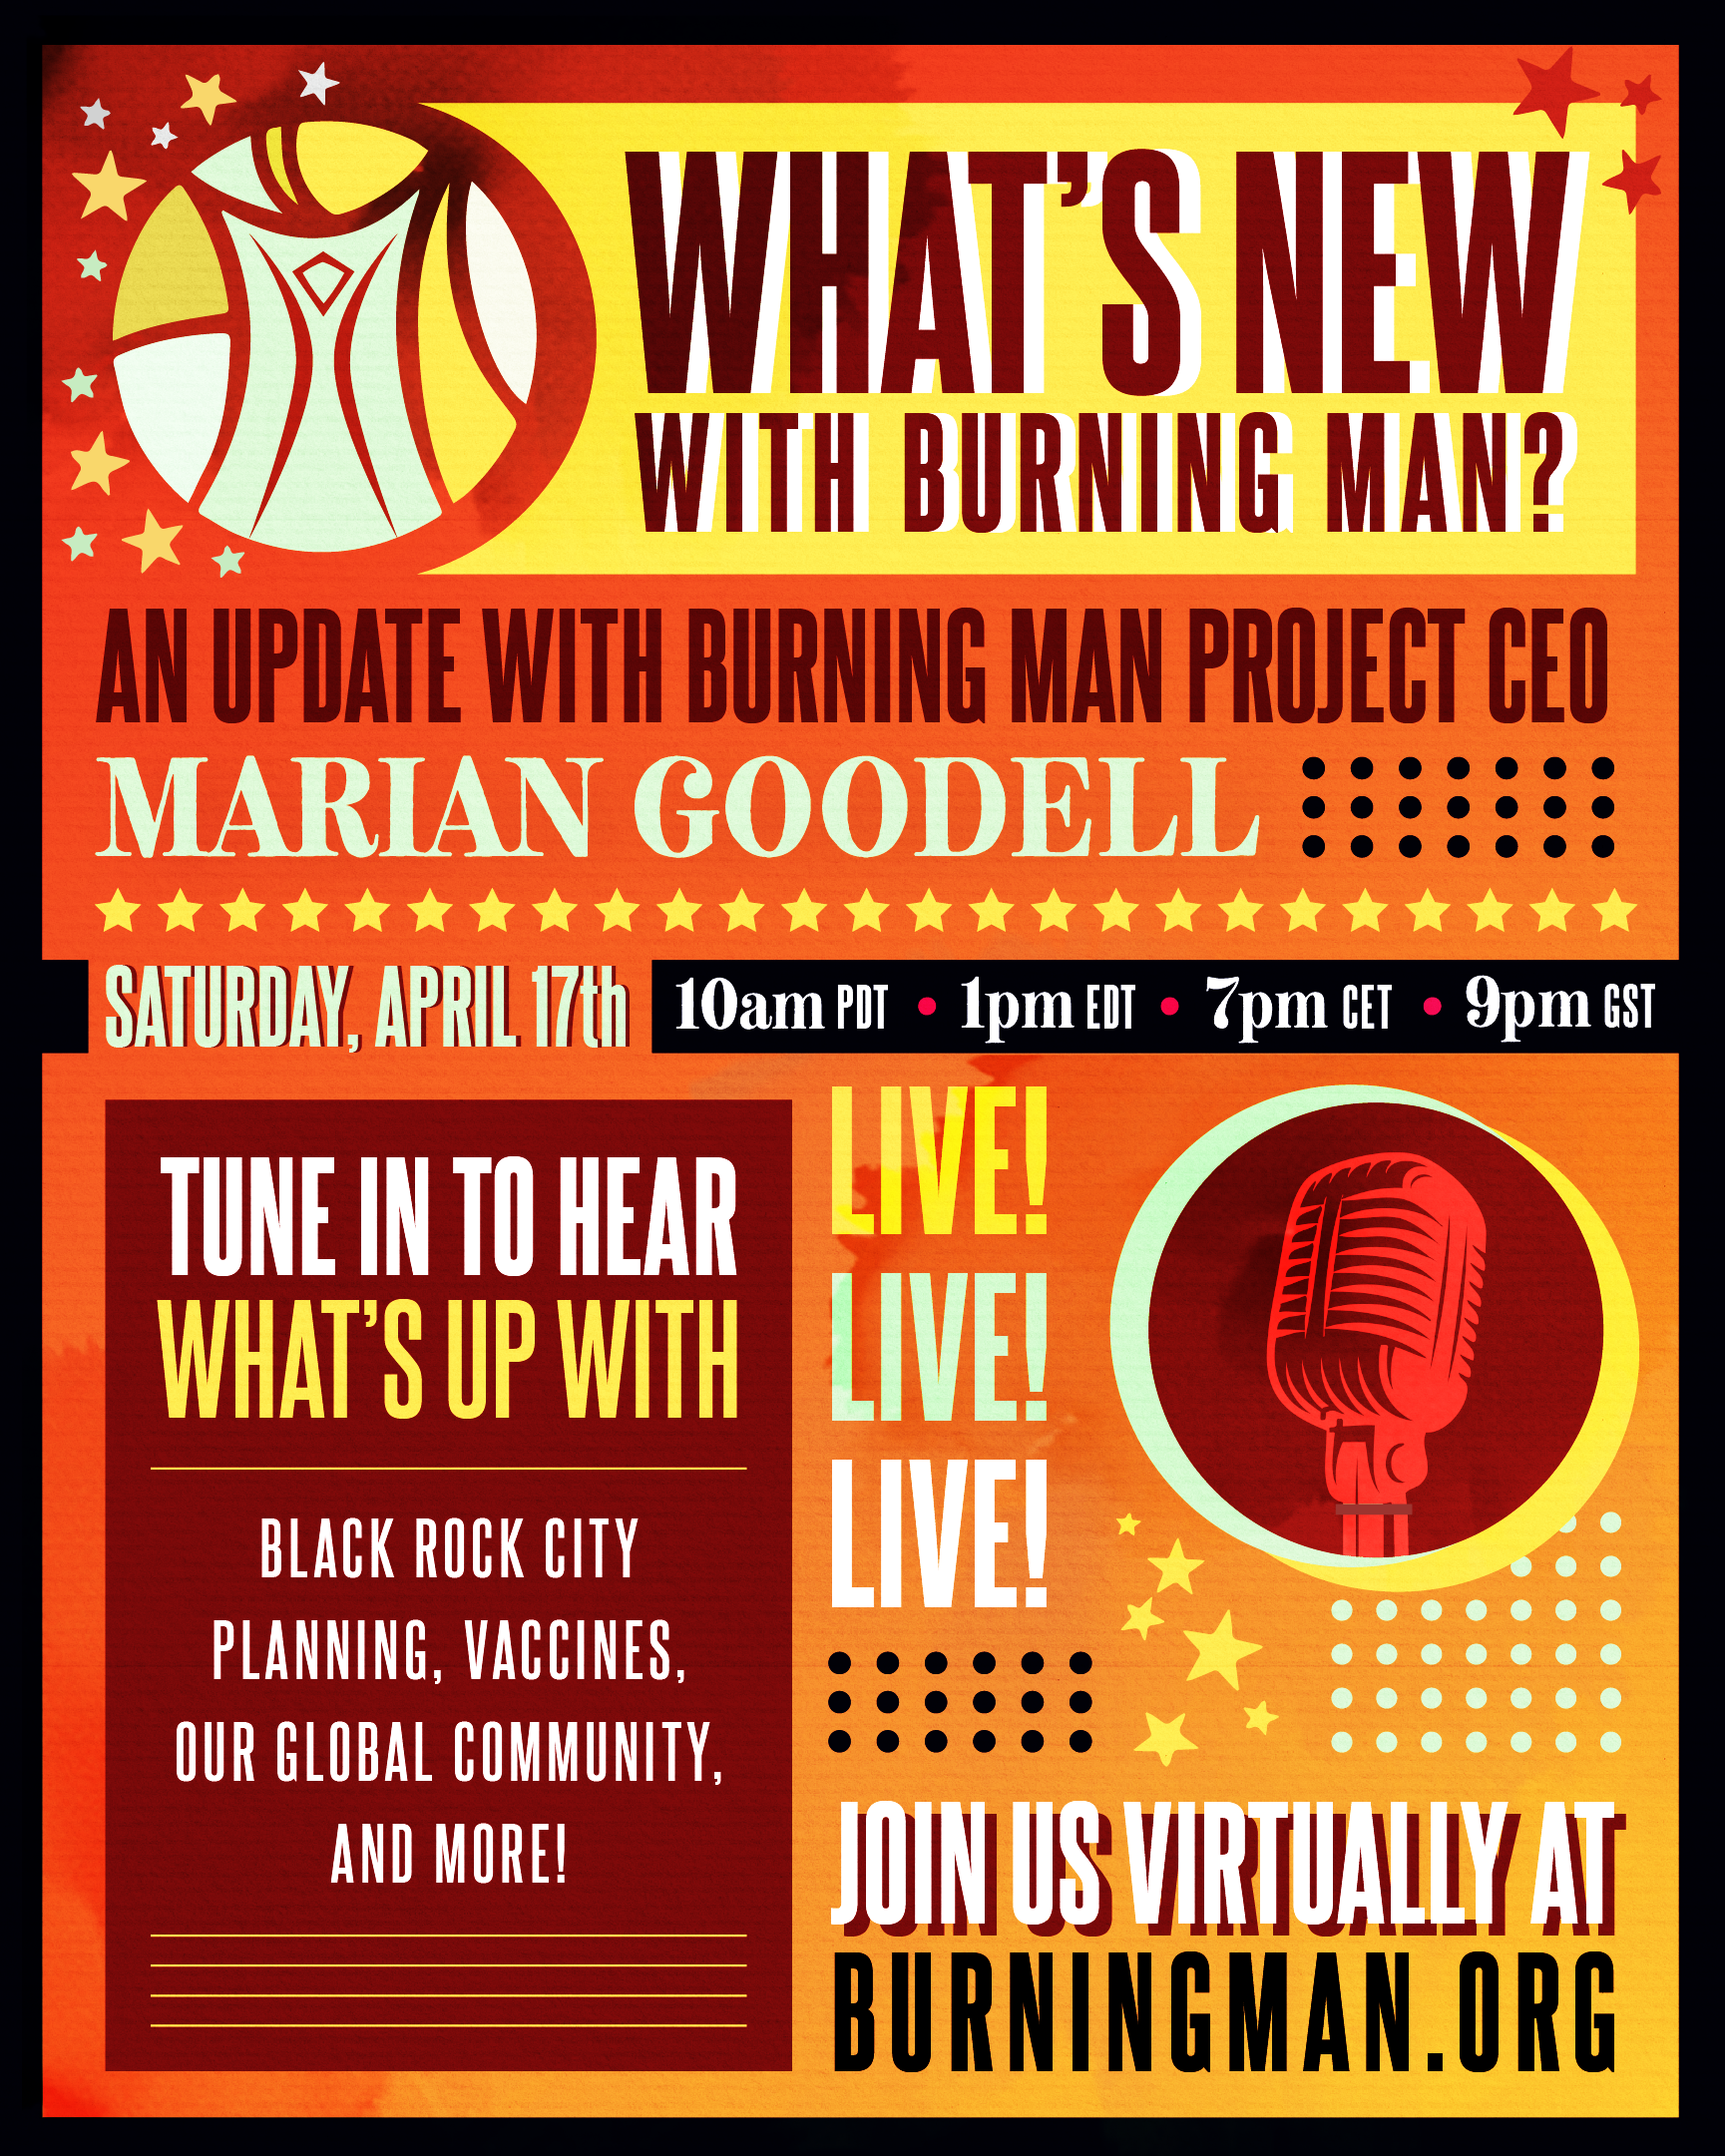 What's new with Burning Man? - Ausgabe 2